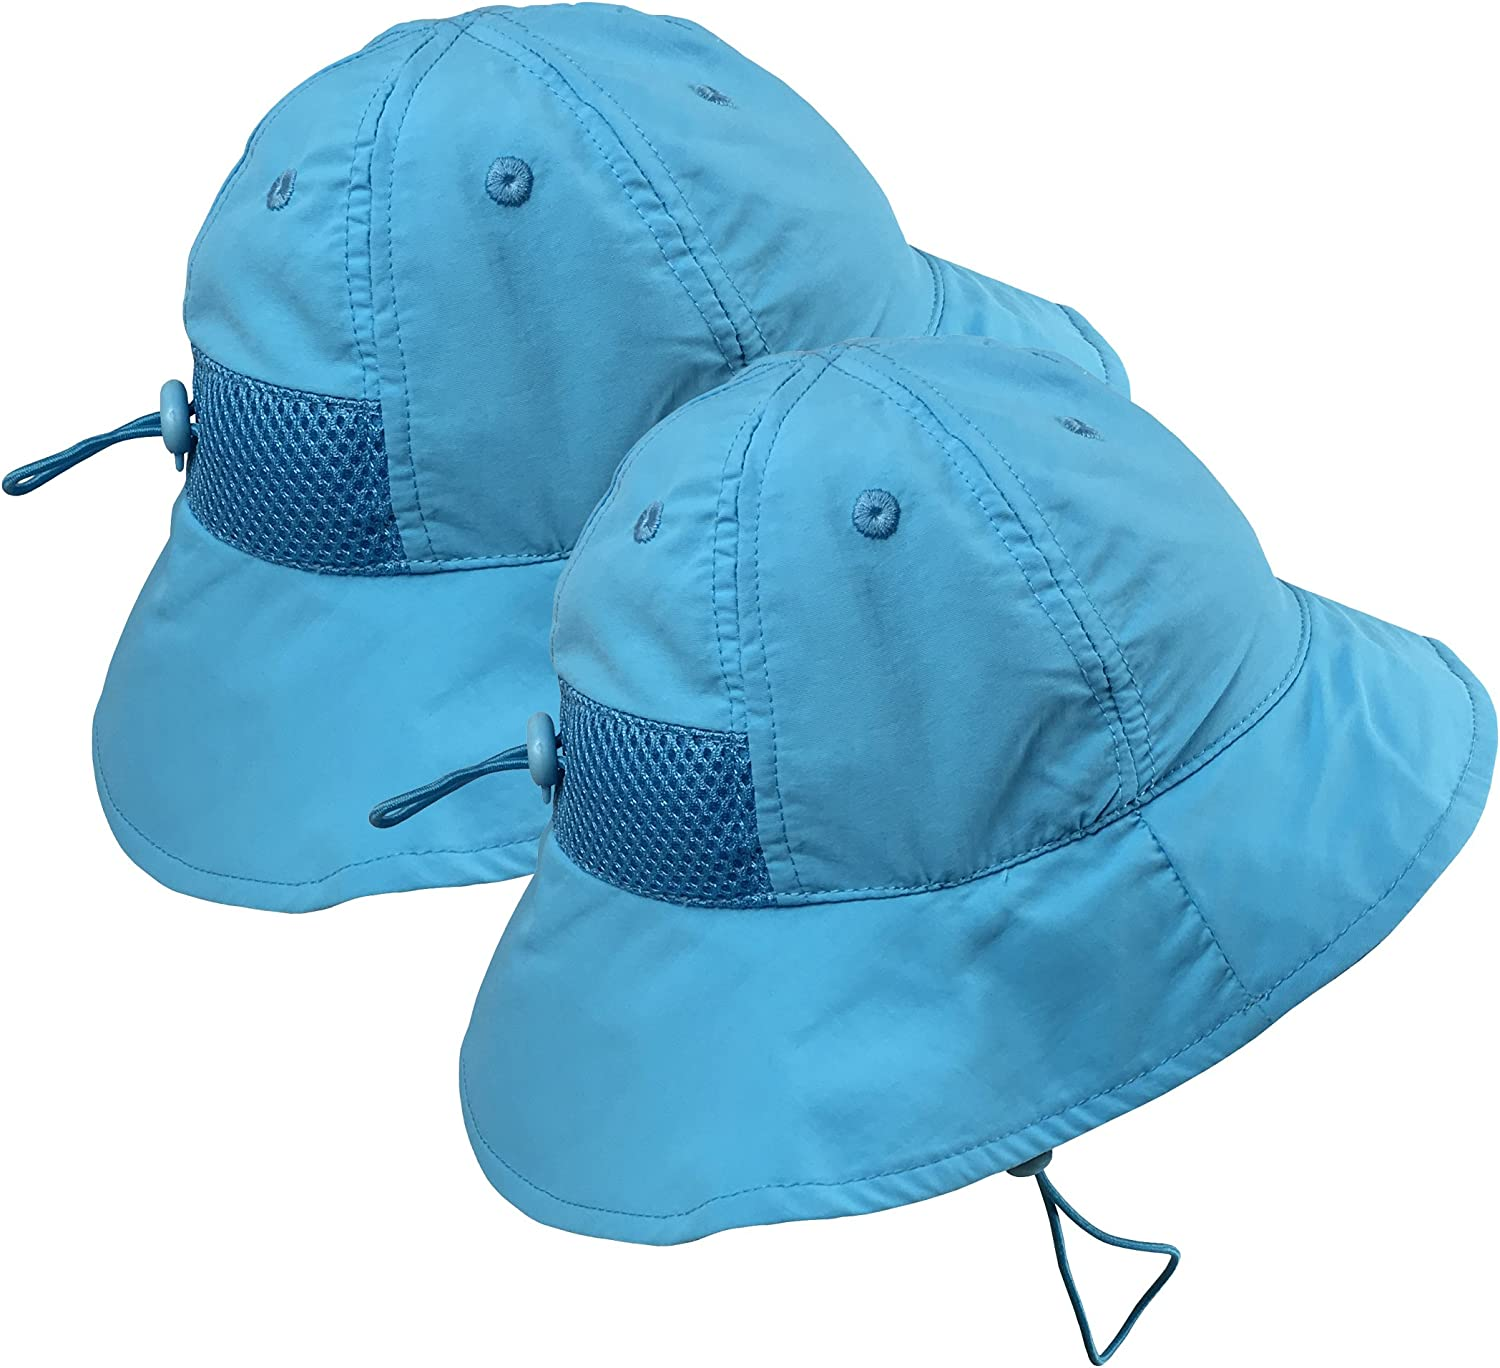 N'Ice Caps Kids 2pc Pack SPF 50+ UV Protection Breathable Sun Hat